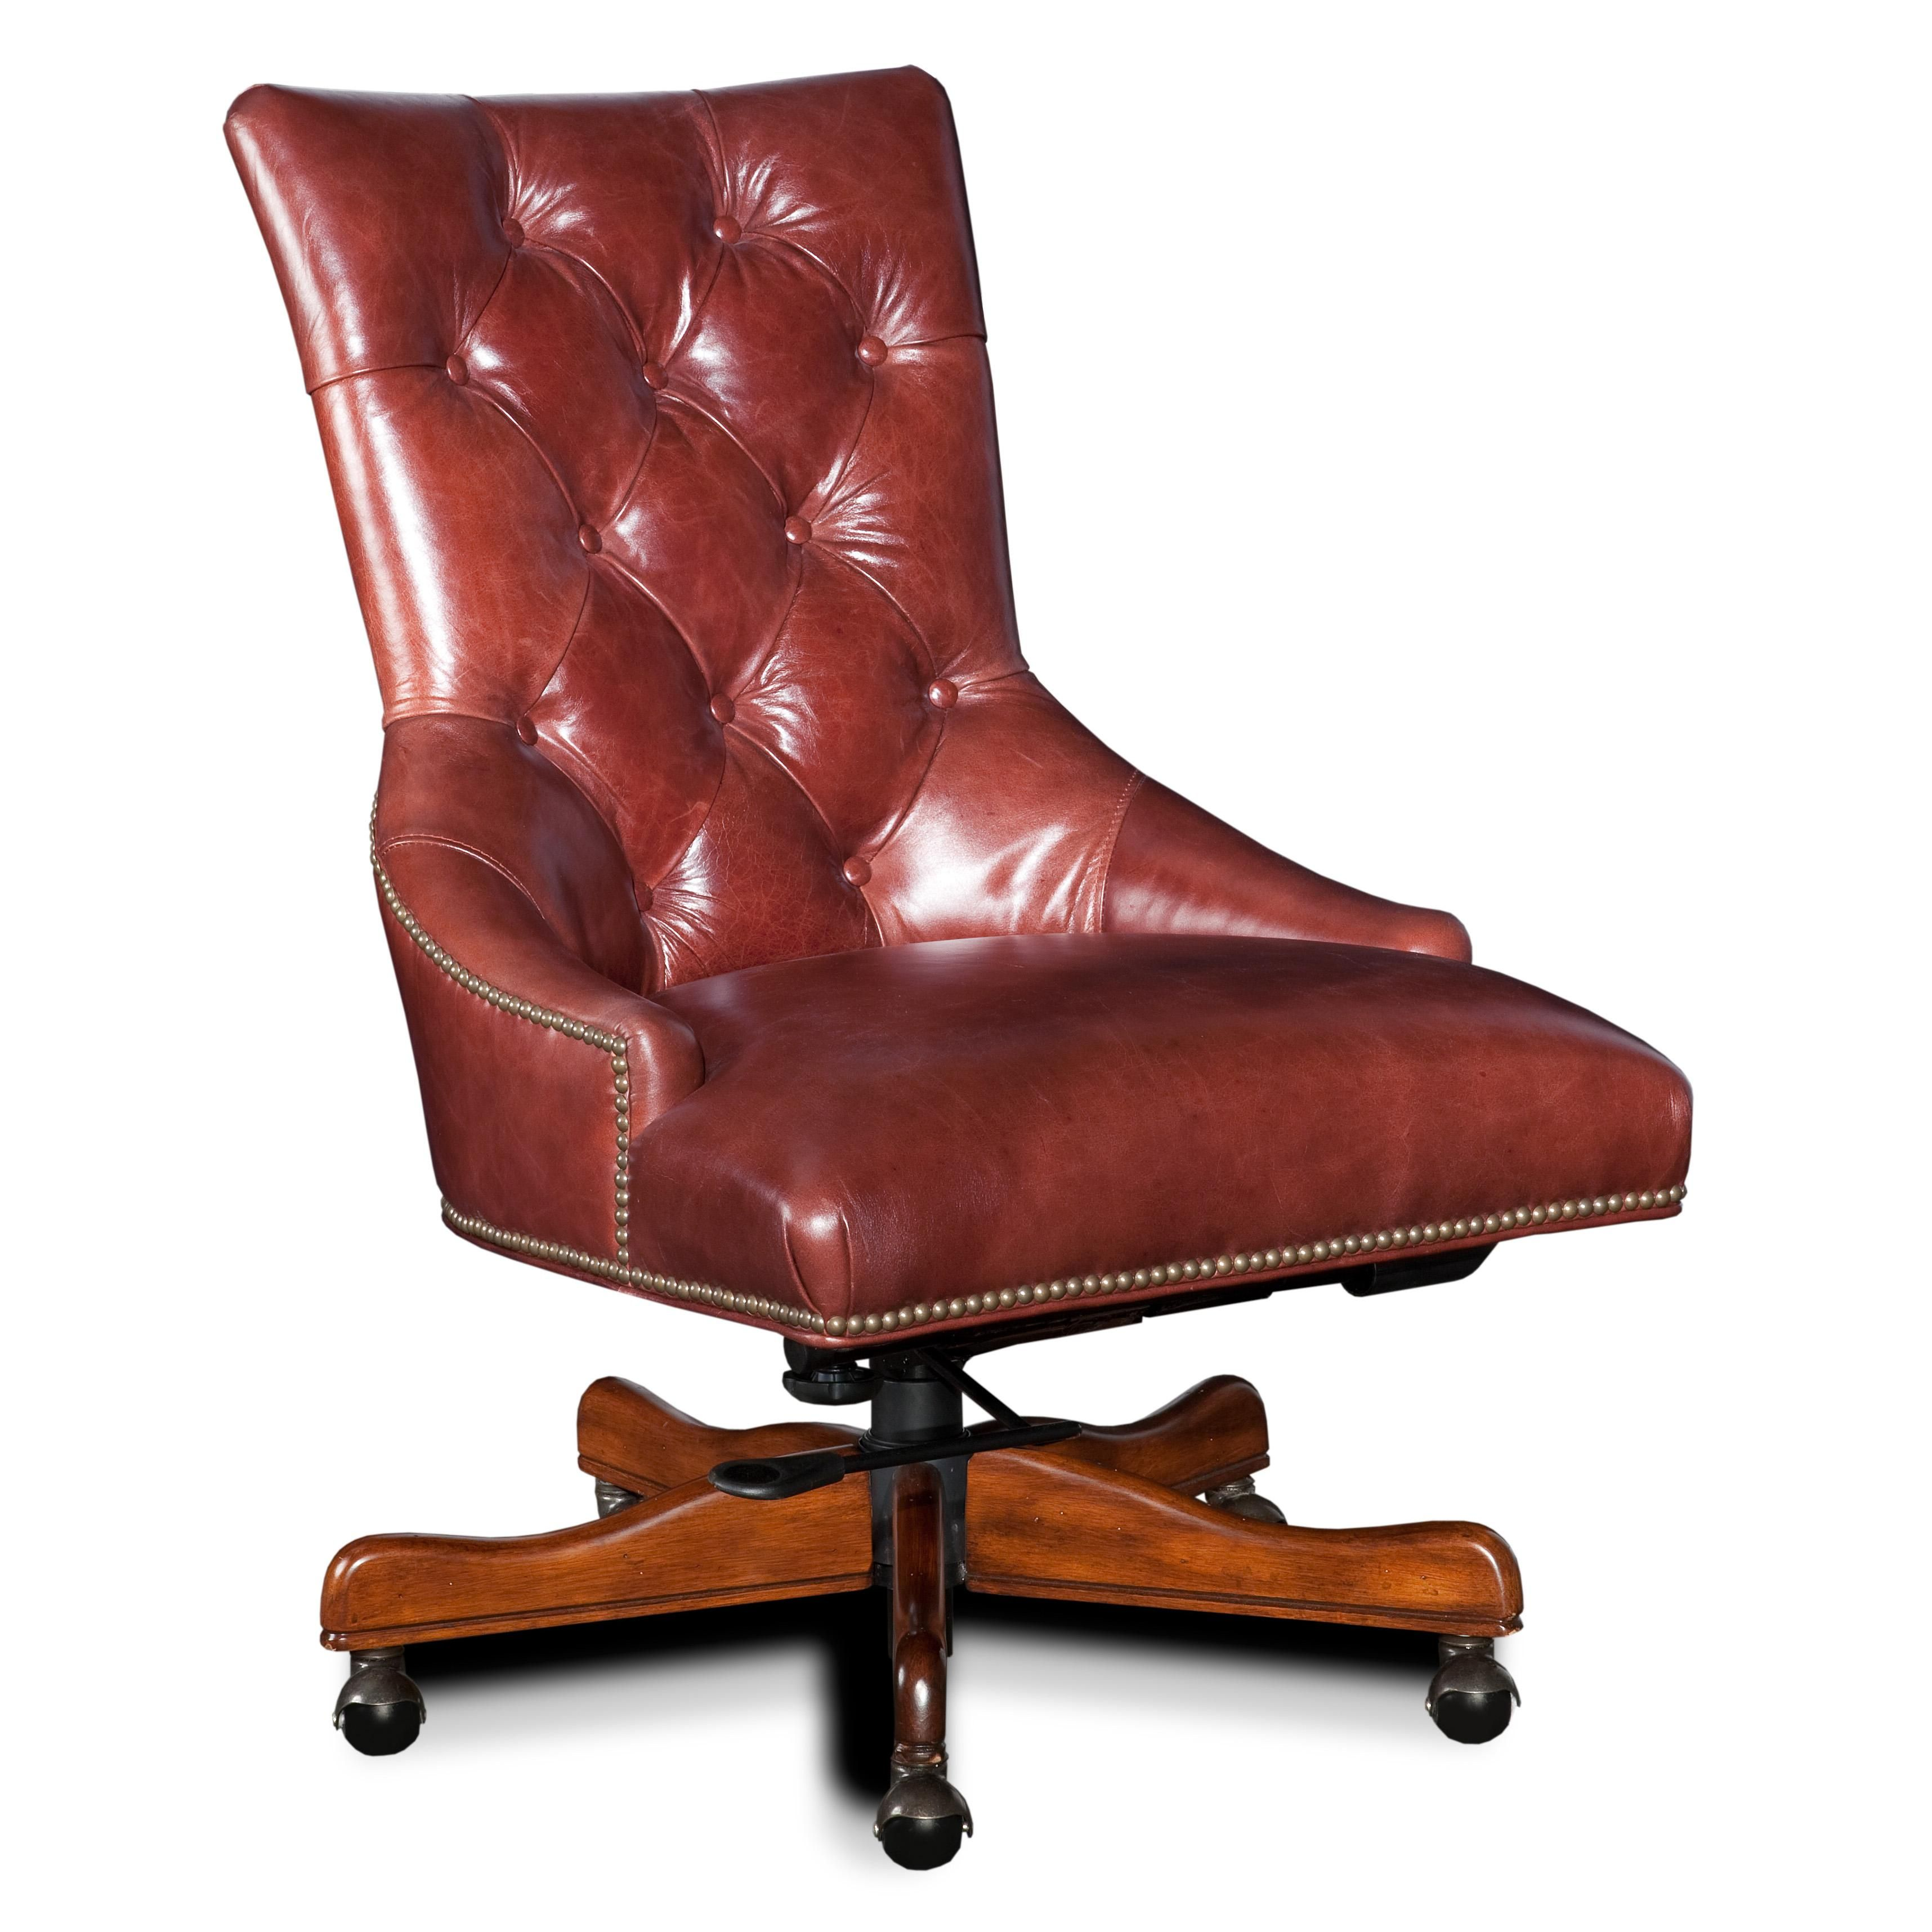 Executive seating executive swivel chair by seven seas